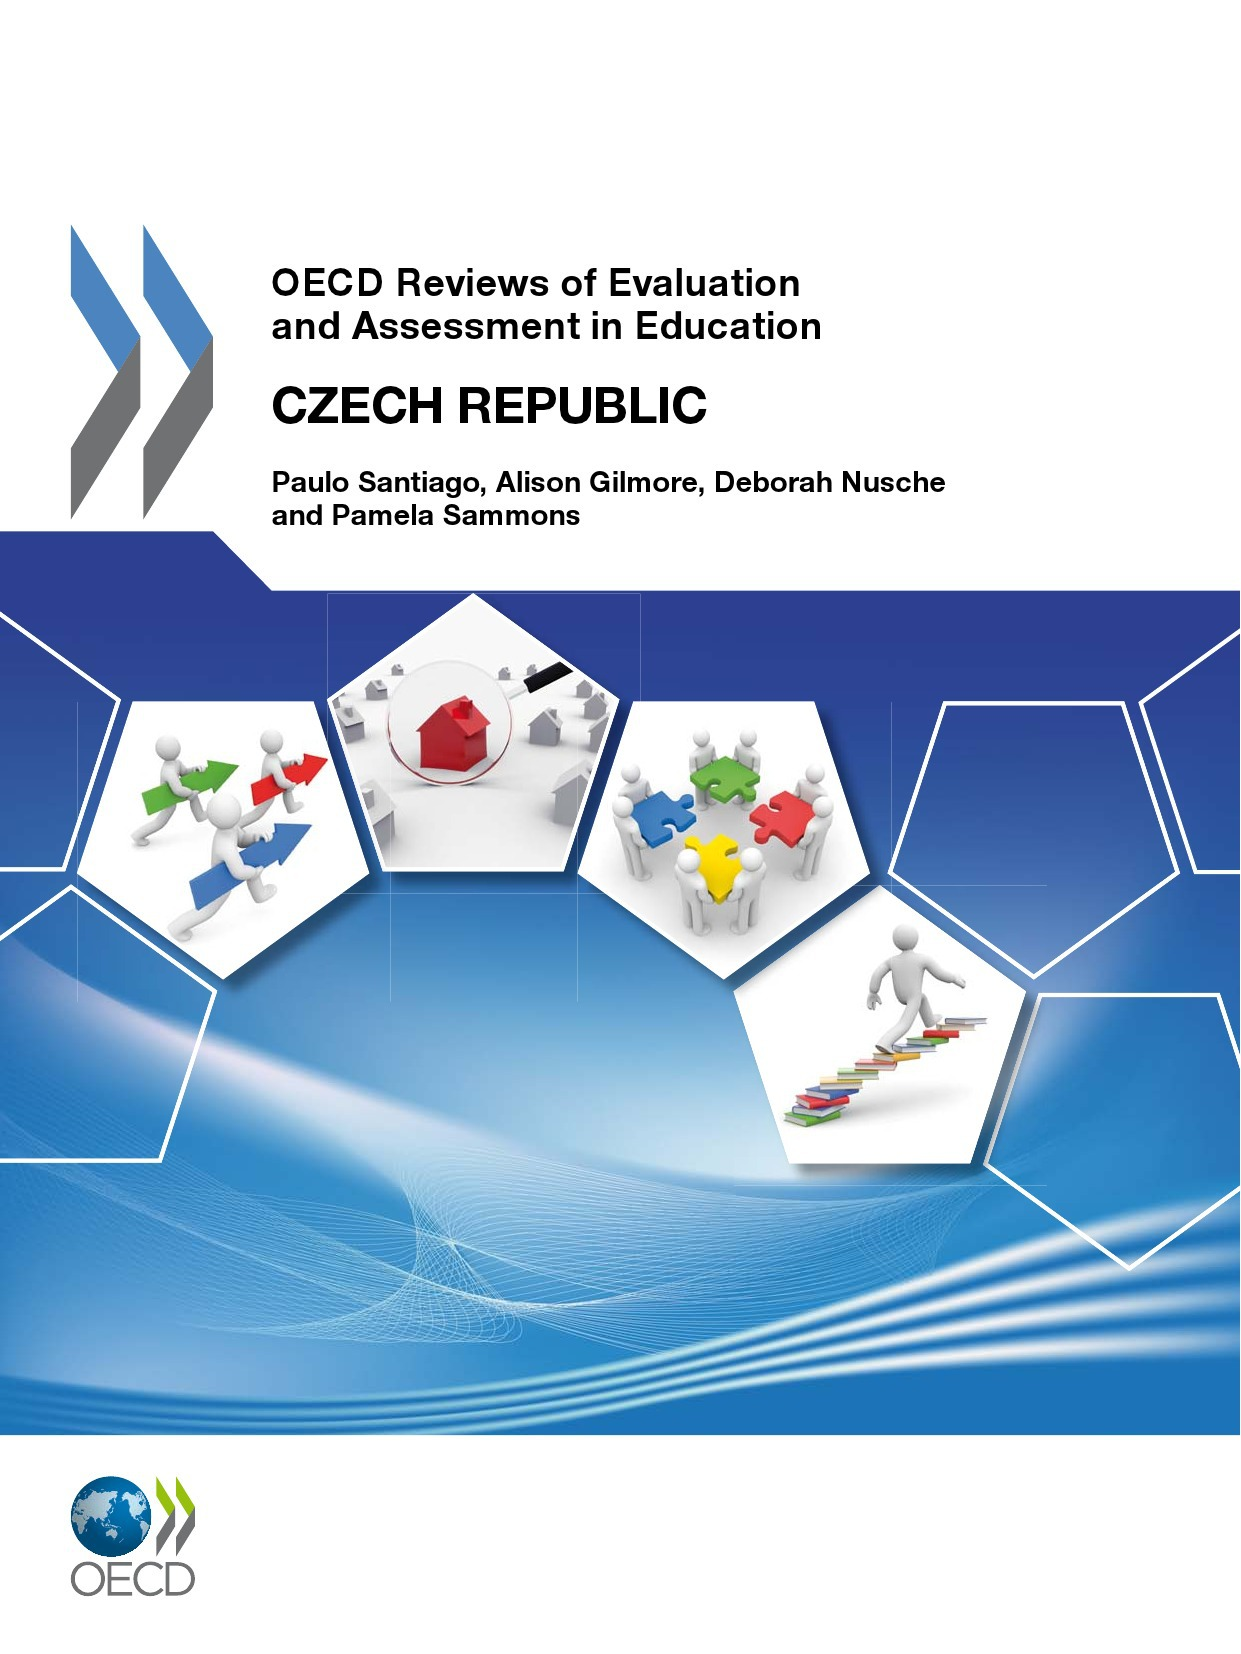 OECD Reviews of Evaluation and Assessment in Education: Czech Republic 2012